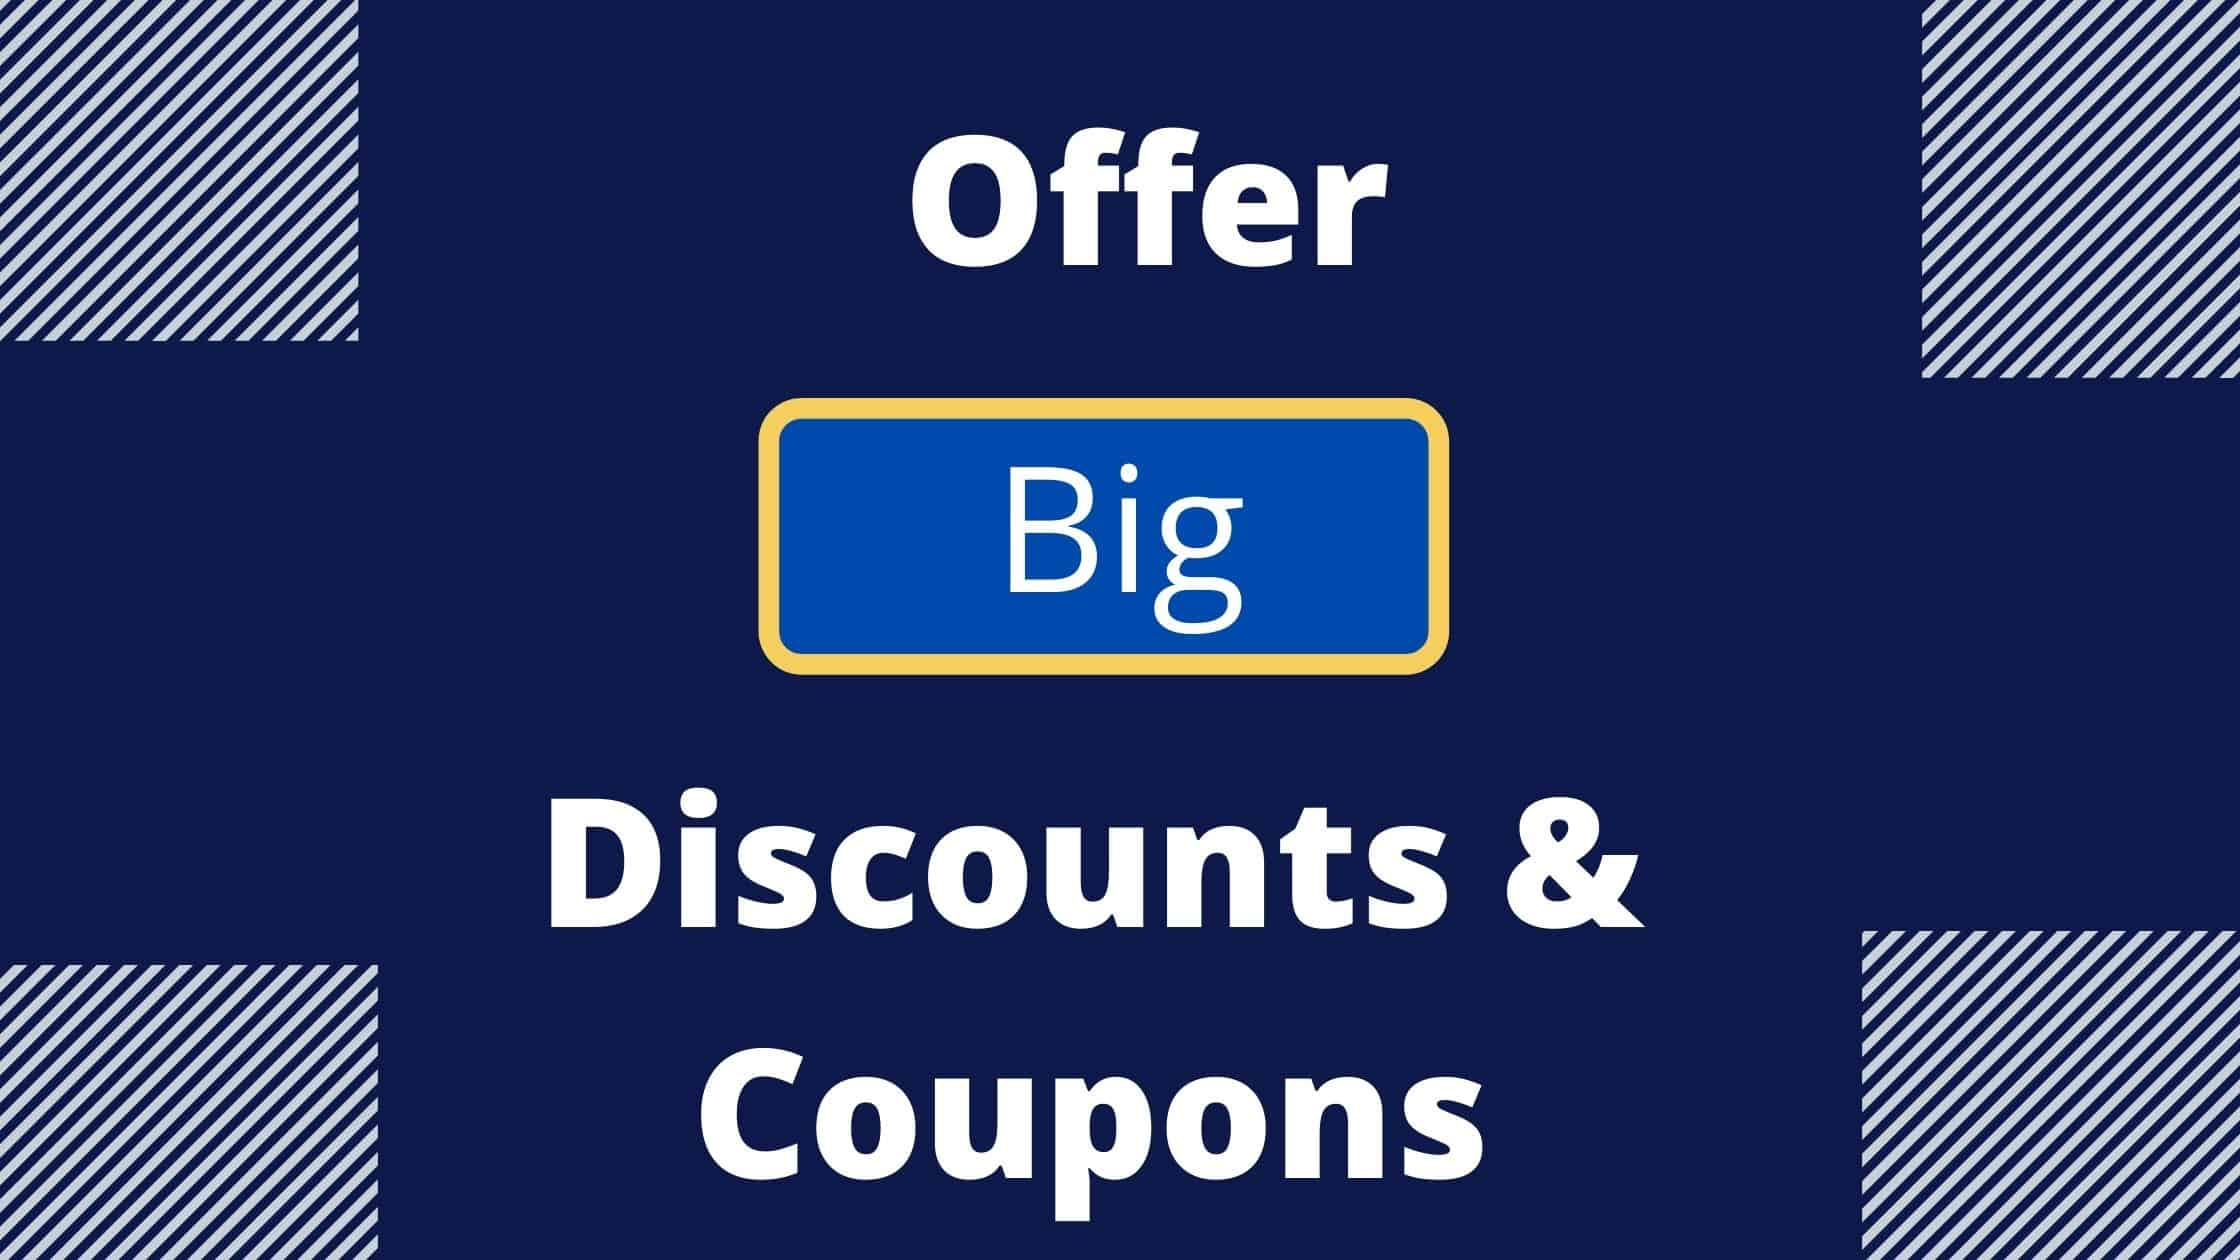 Offer Big Discounts & Coupons